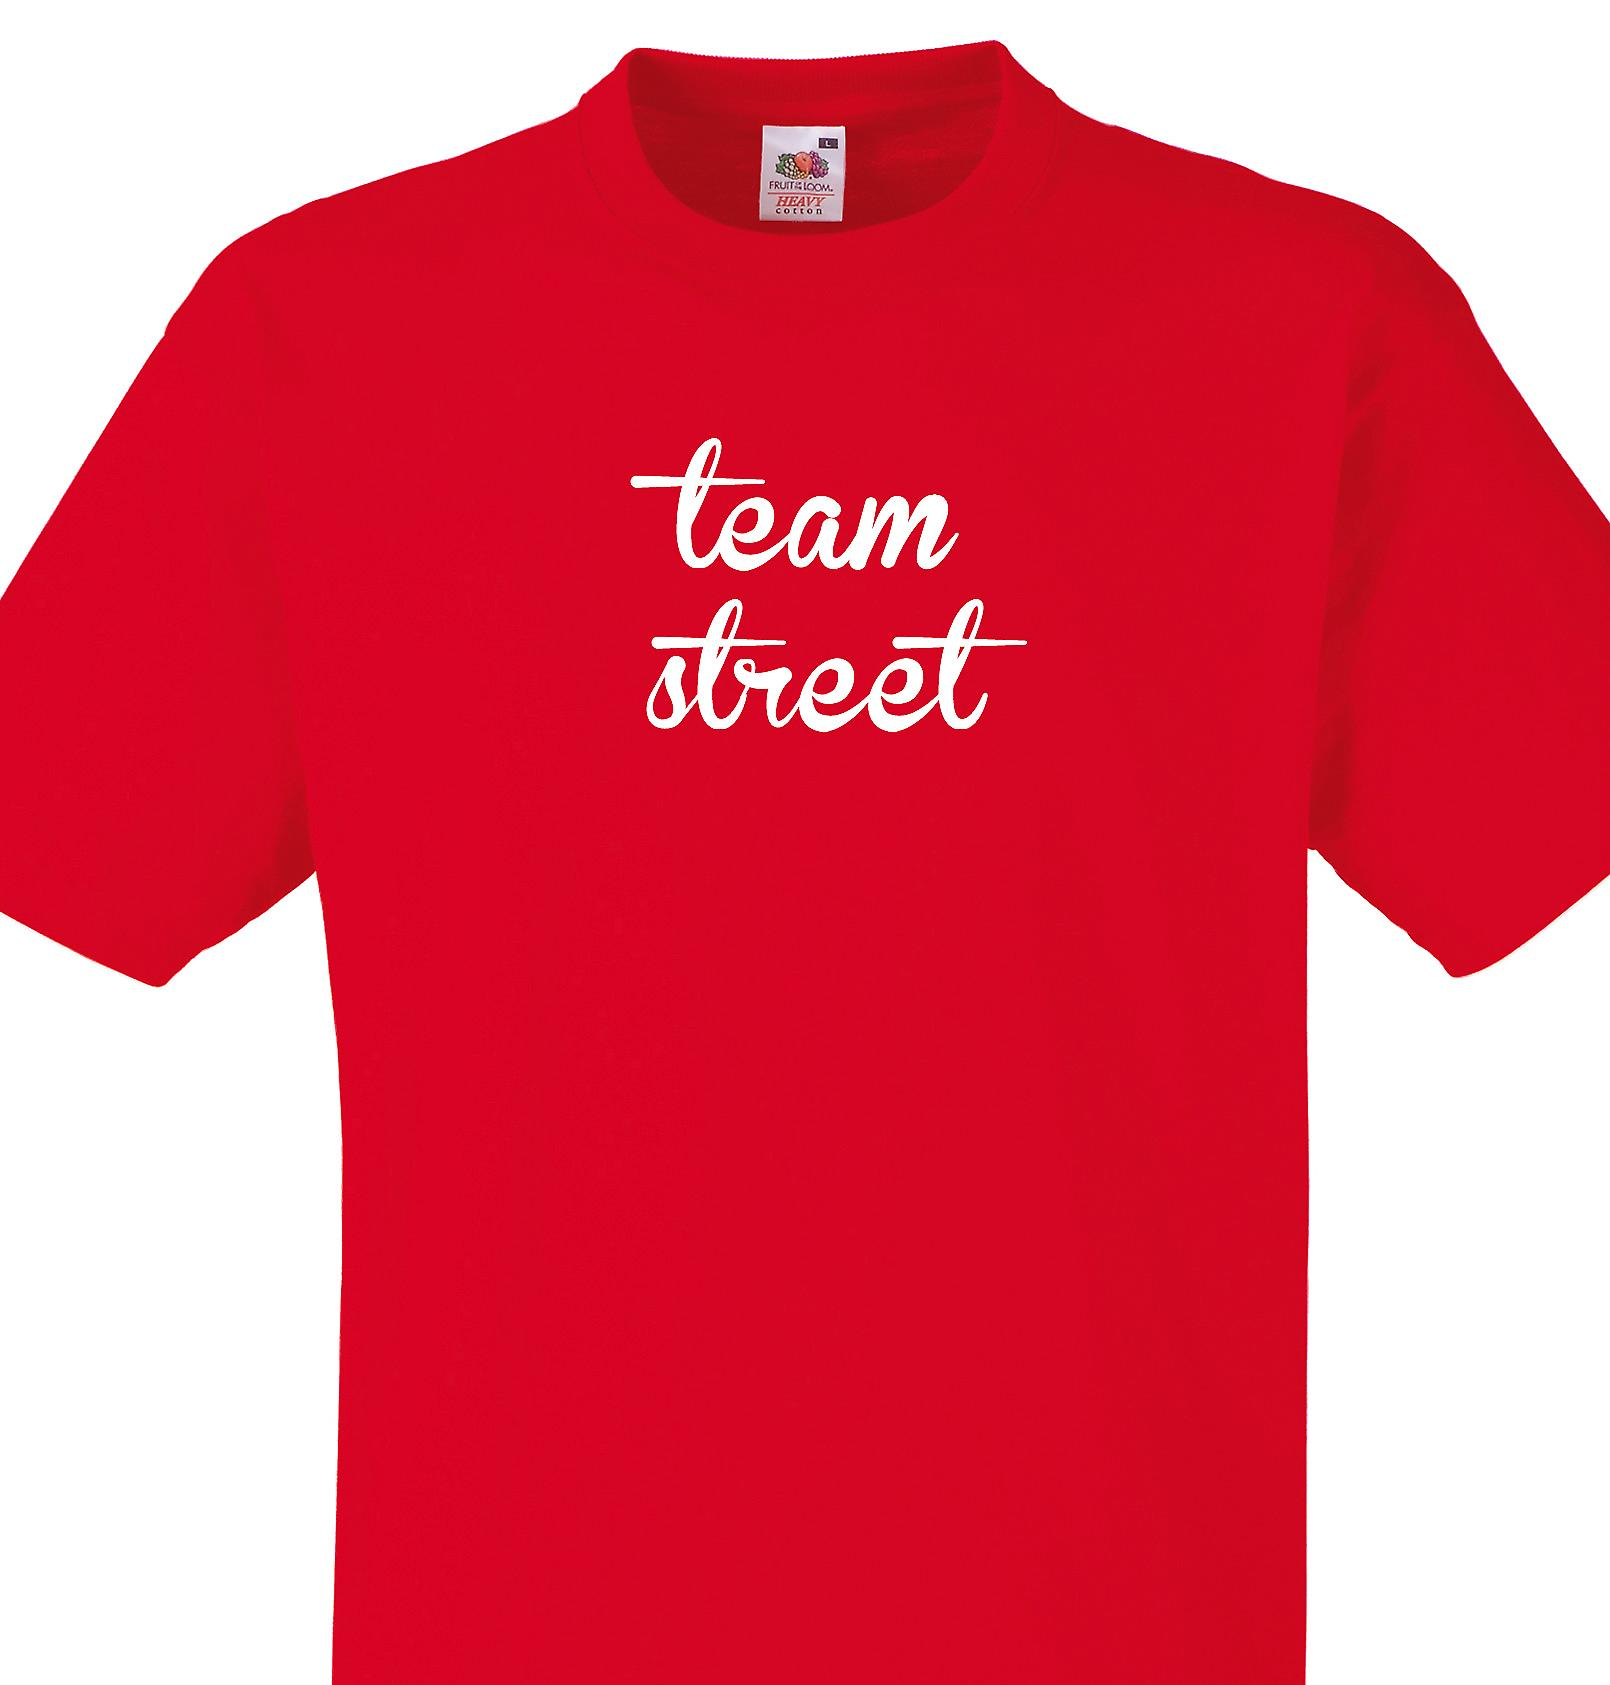 Team Street Red T shirt